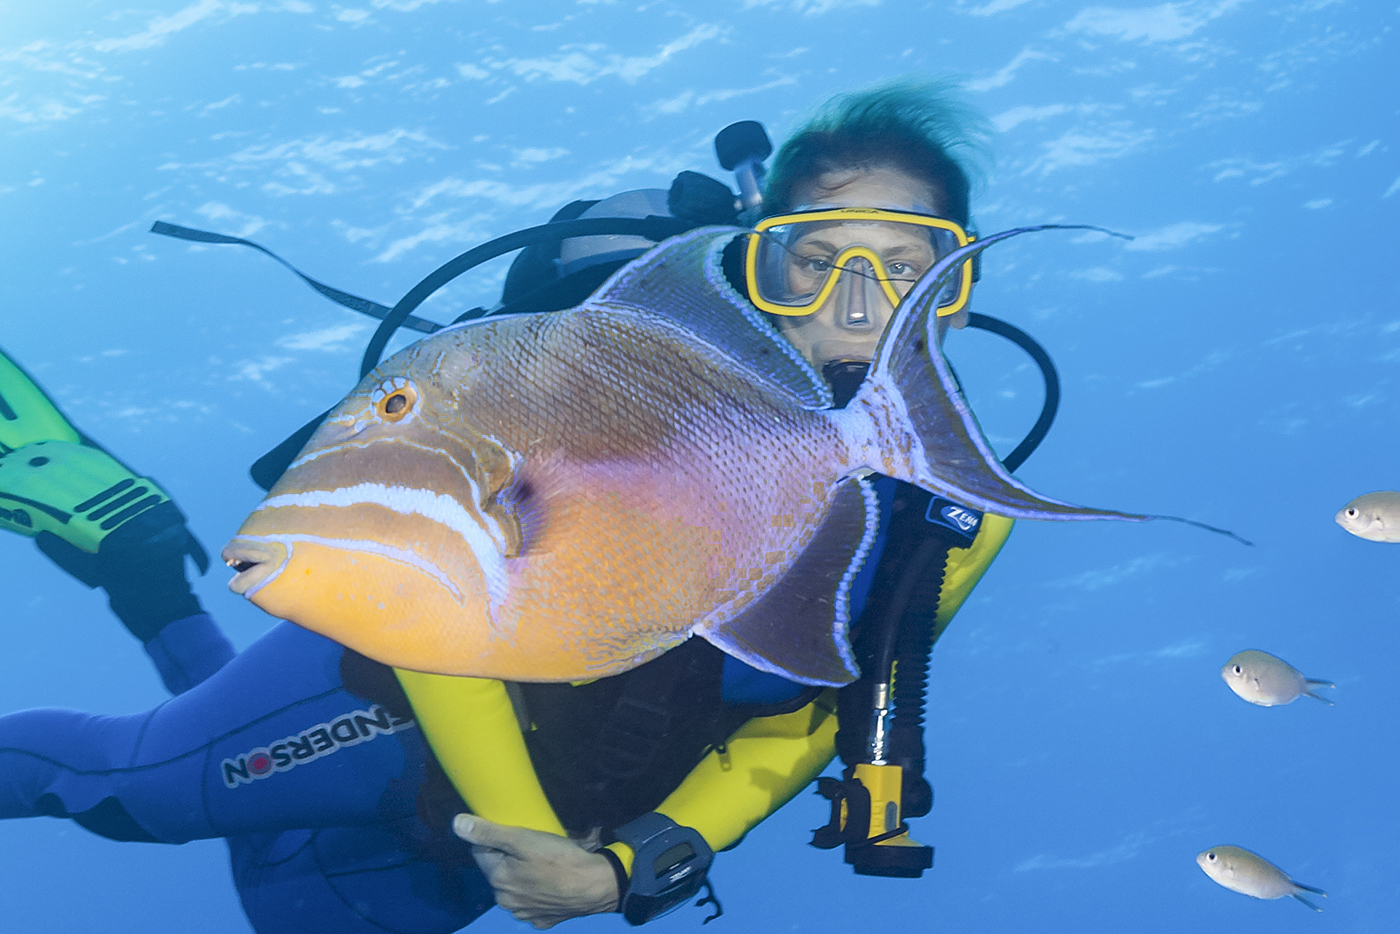 The queen triggerfish is one of the larger species found on Caribbean reefs, reaching lengths of up to two feet. This fish can lighten or darken its coloration depending on its mood.